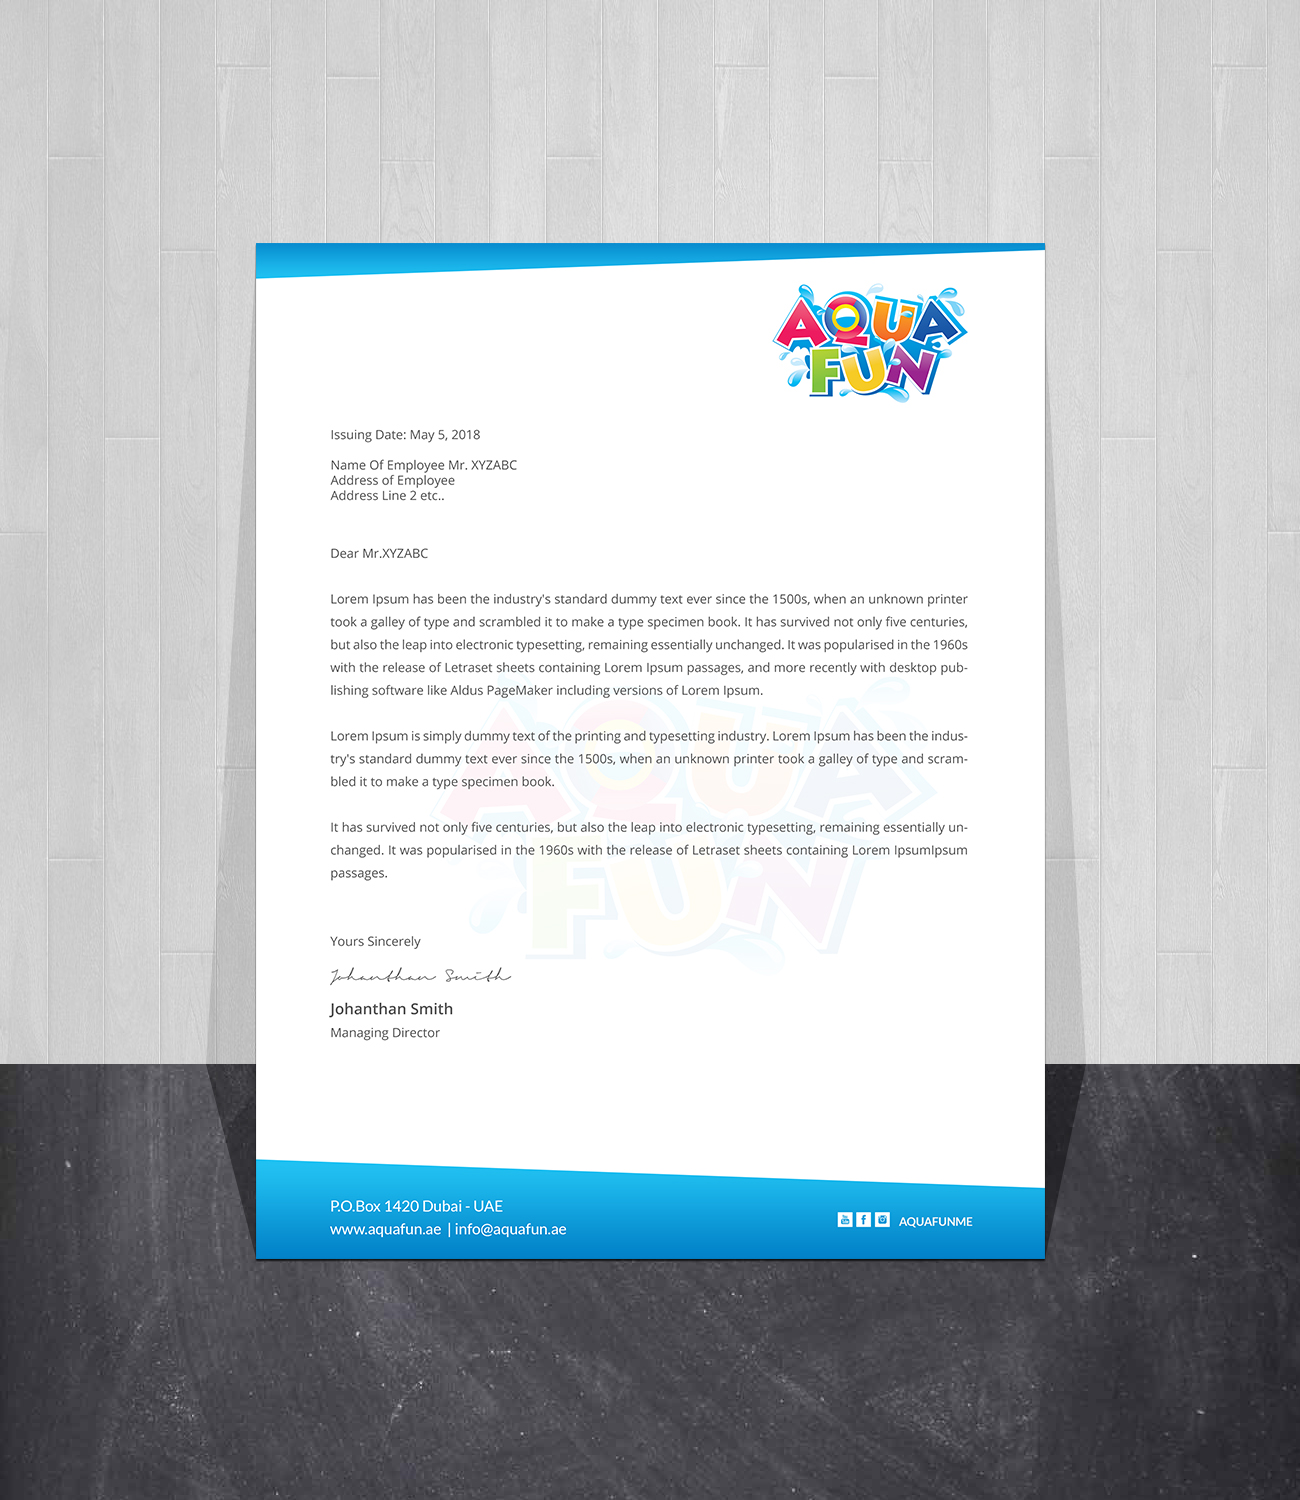 Letterhead Design By Creations Box 2015 For This Project -